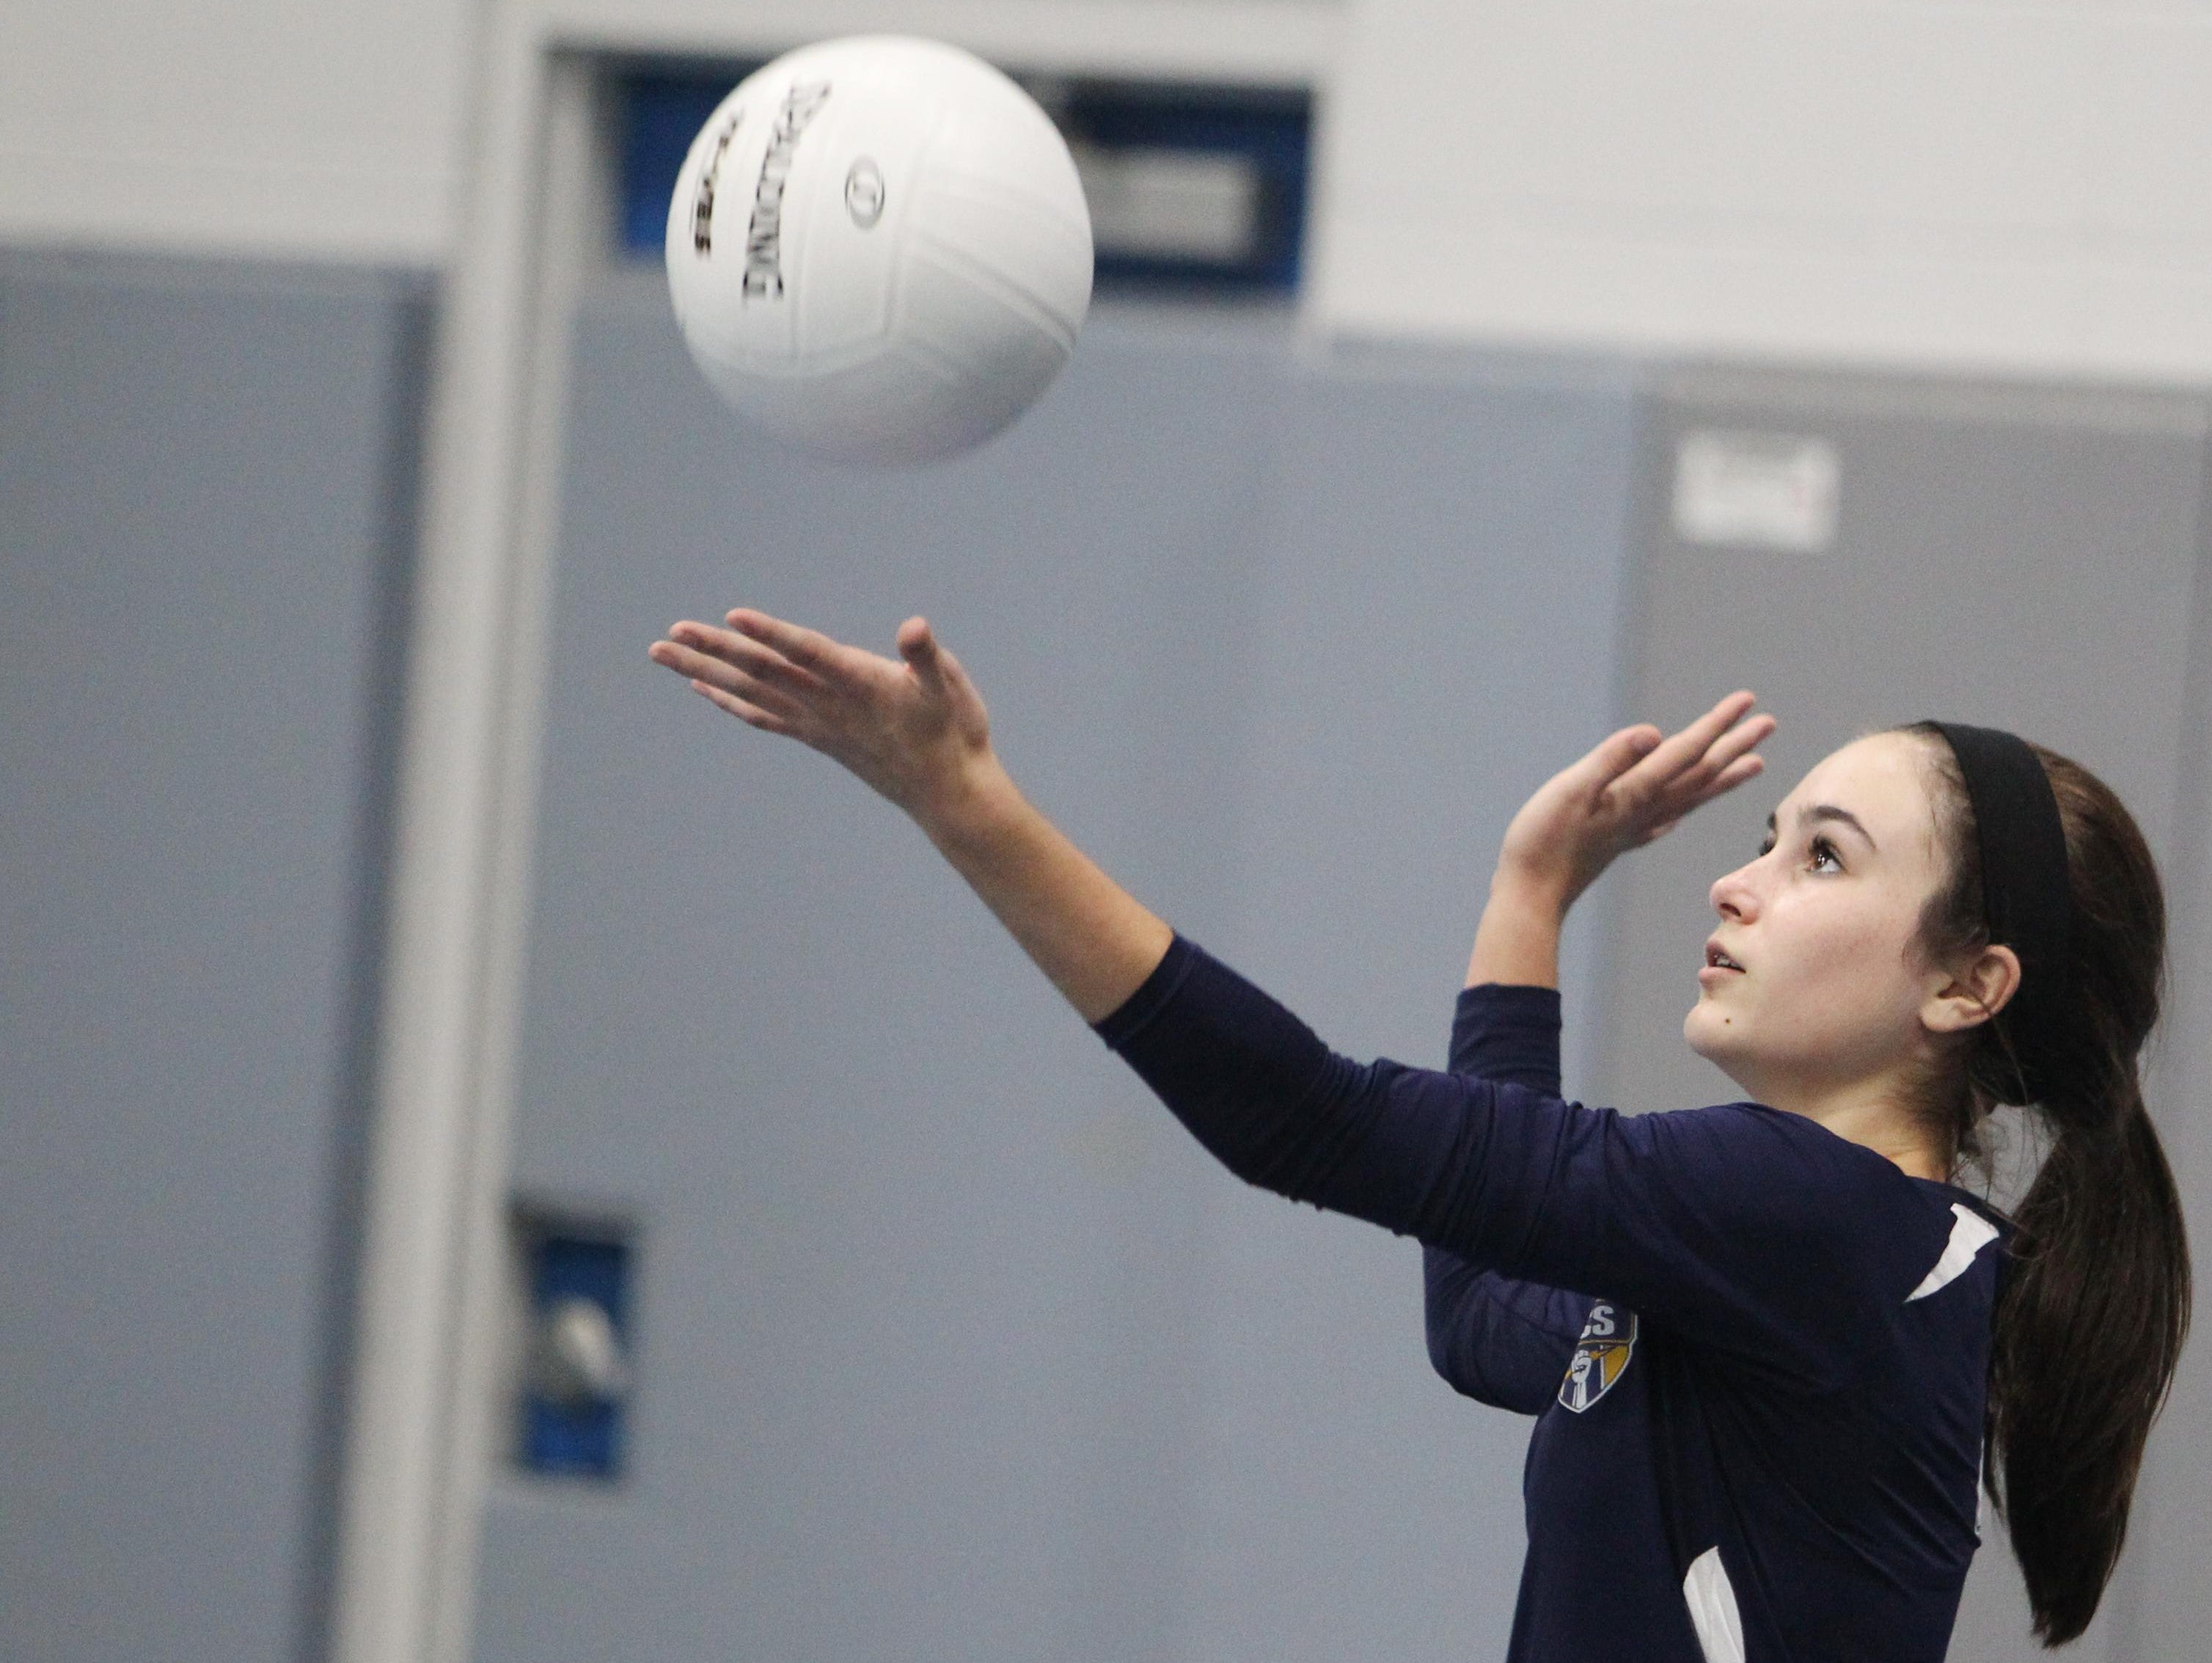 Community Christian School eighth grader Abby Watson prepares to serve in a game against Christ's Church Academy.